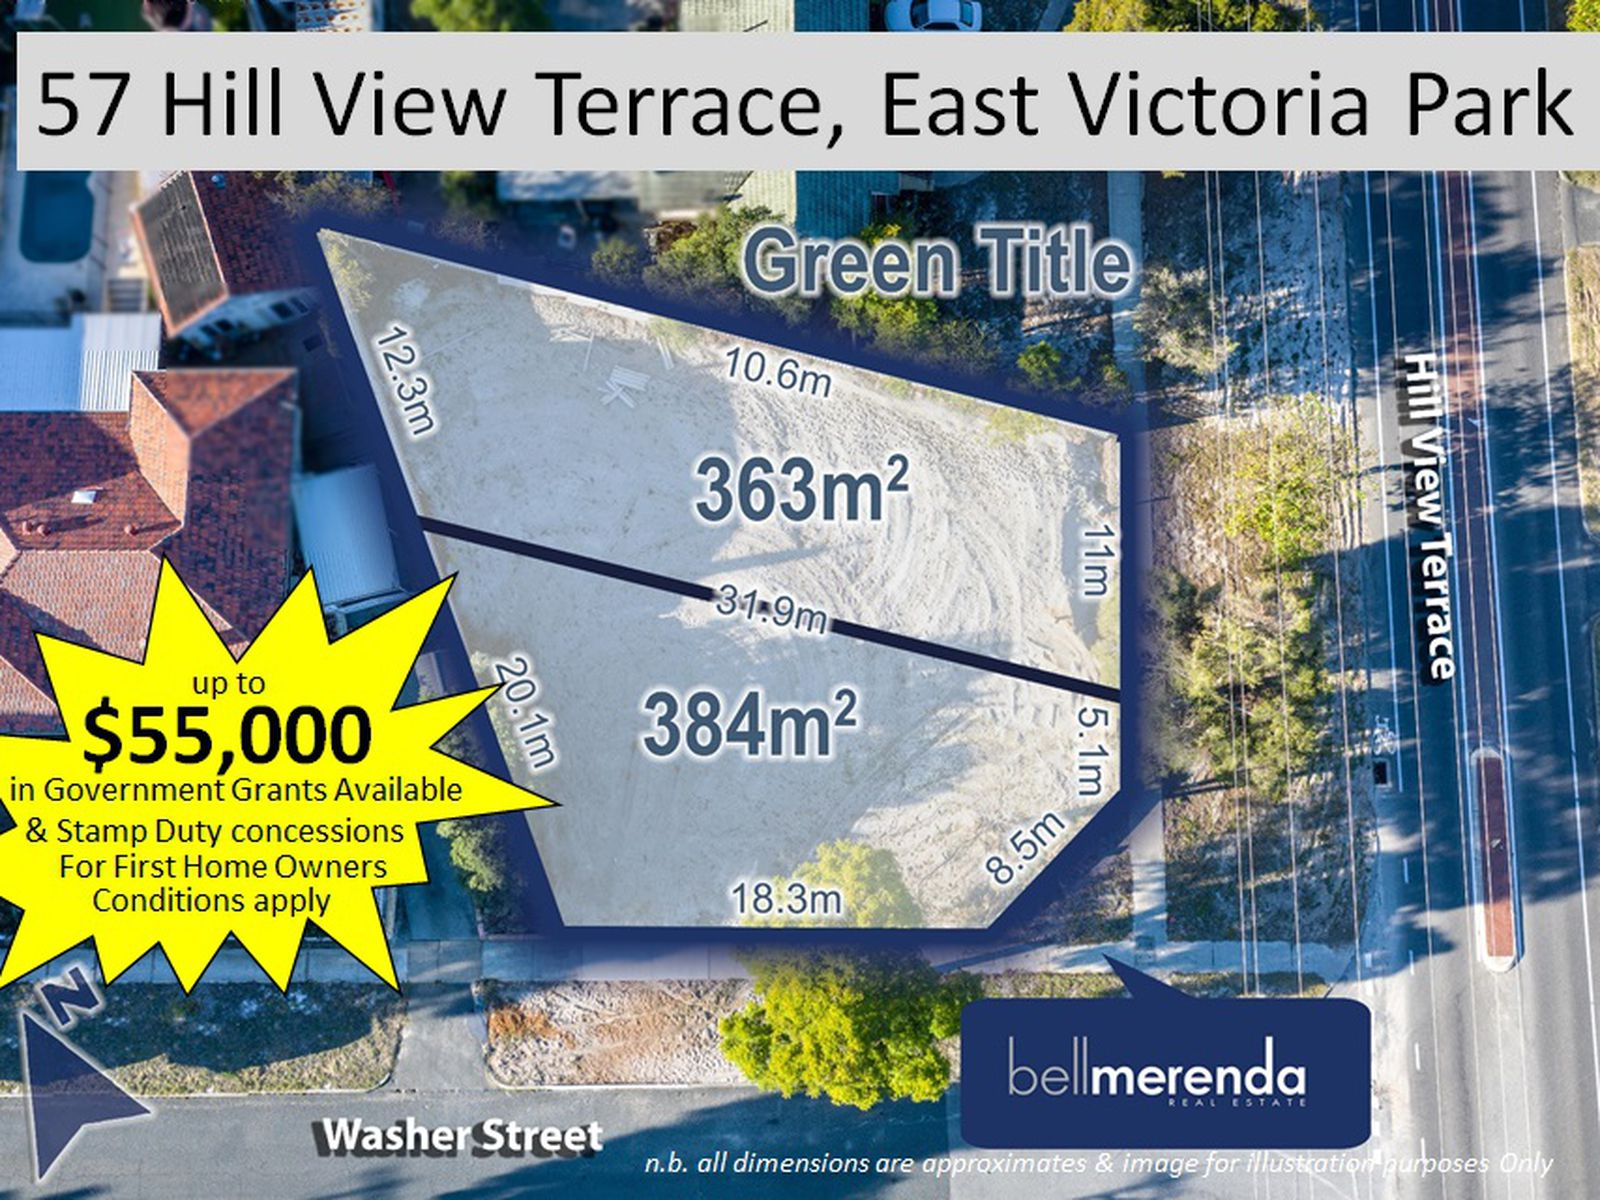 57 Hill View Terrace, East Victoria Park